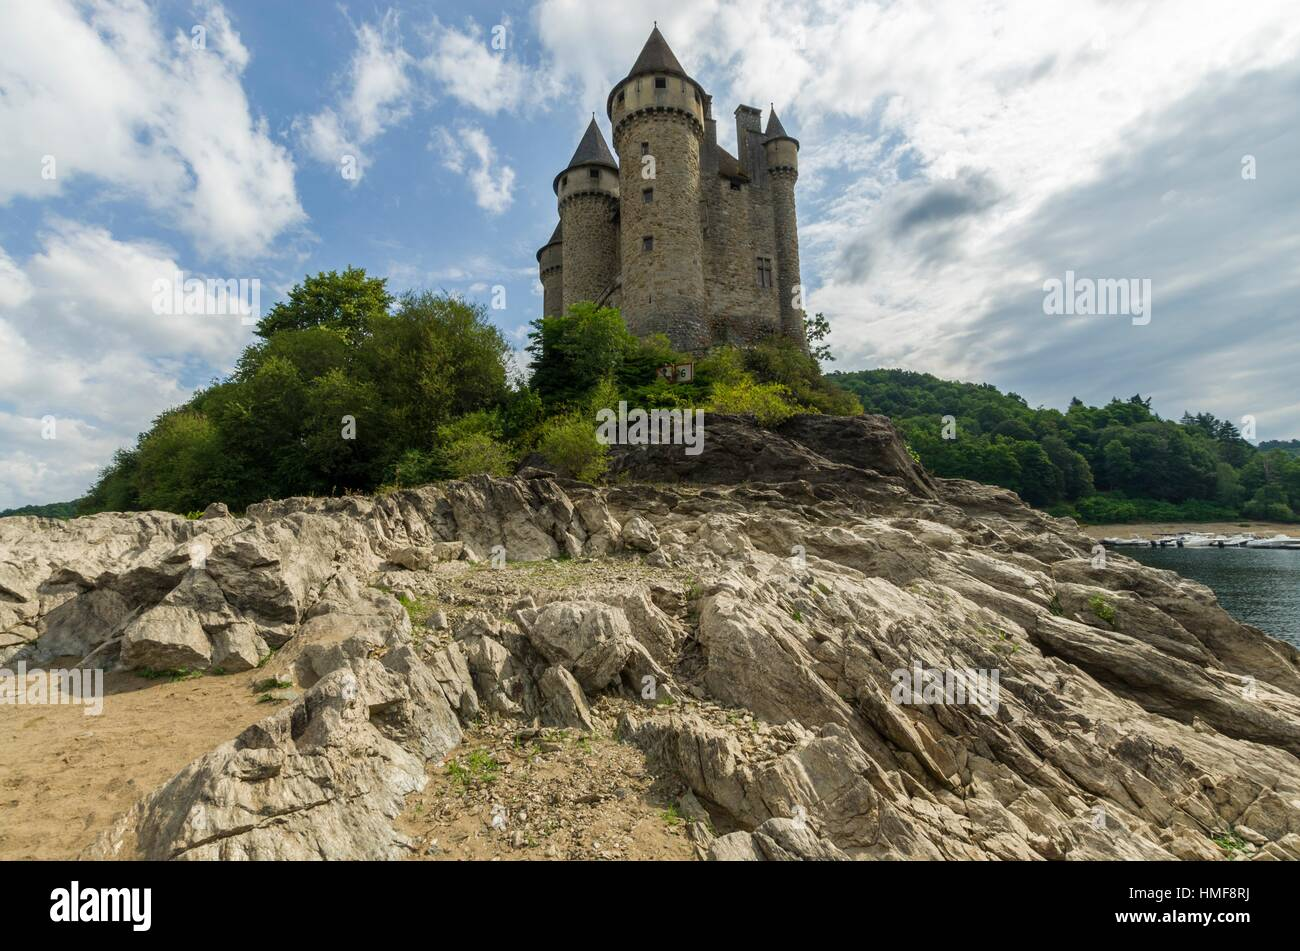 Val Castle  Cantal  Pays D U00b4artense  Auvergne-rh U00f4ne-alpes  France Stock Photo  133101910